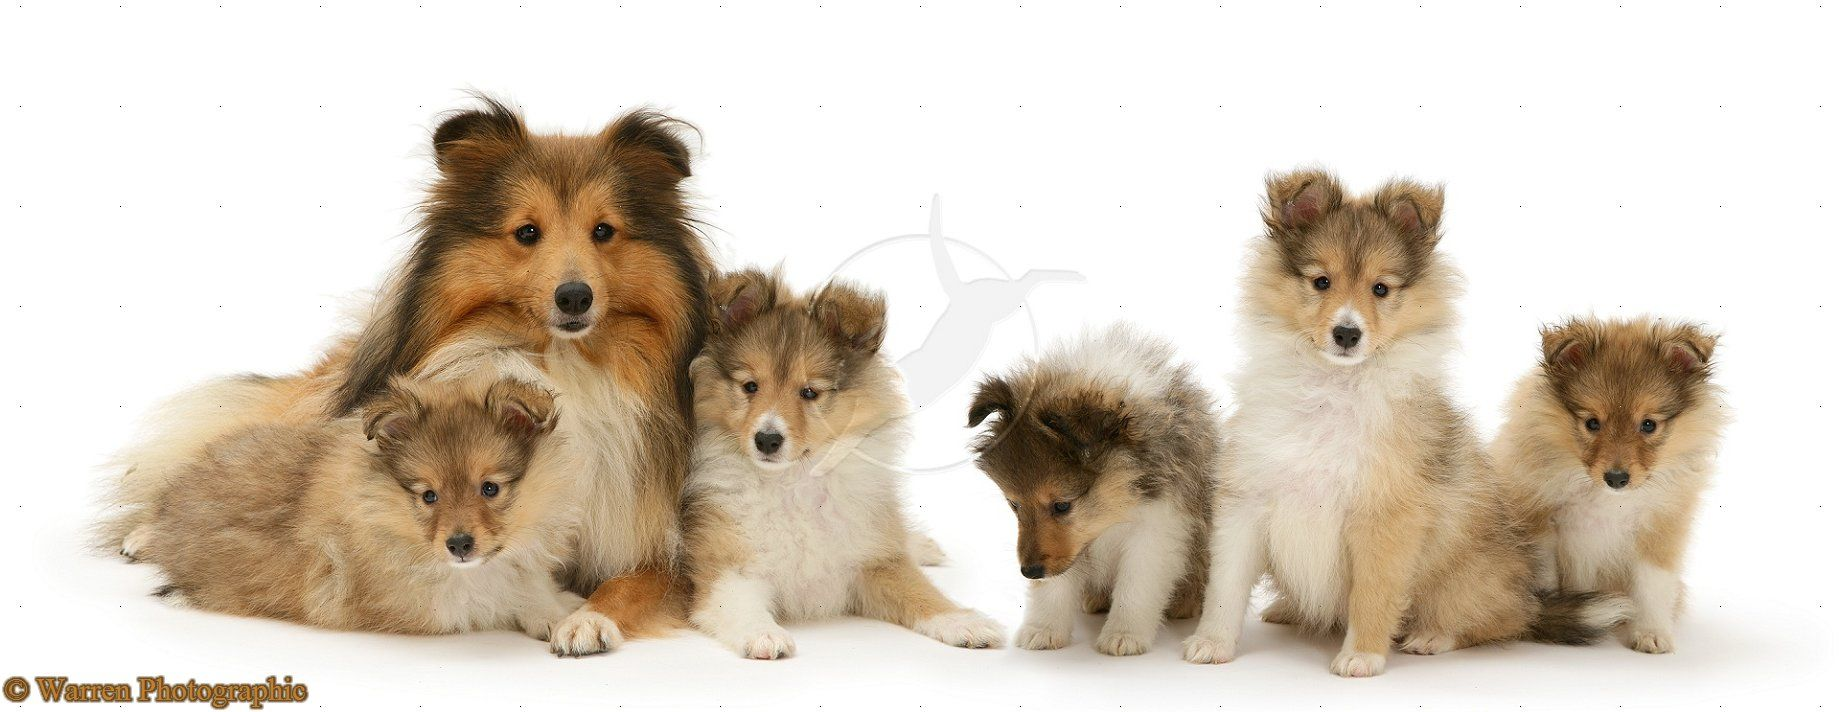 Google Image Result For Http Www Warrenphotographic Co Uk Photography Bigs 14566 Sable Shetland Sheepdog Sheltie Puppy Dog Photos Shetland Sheepdog Sheltie